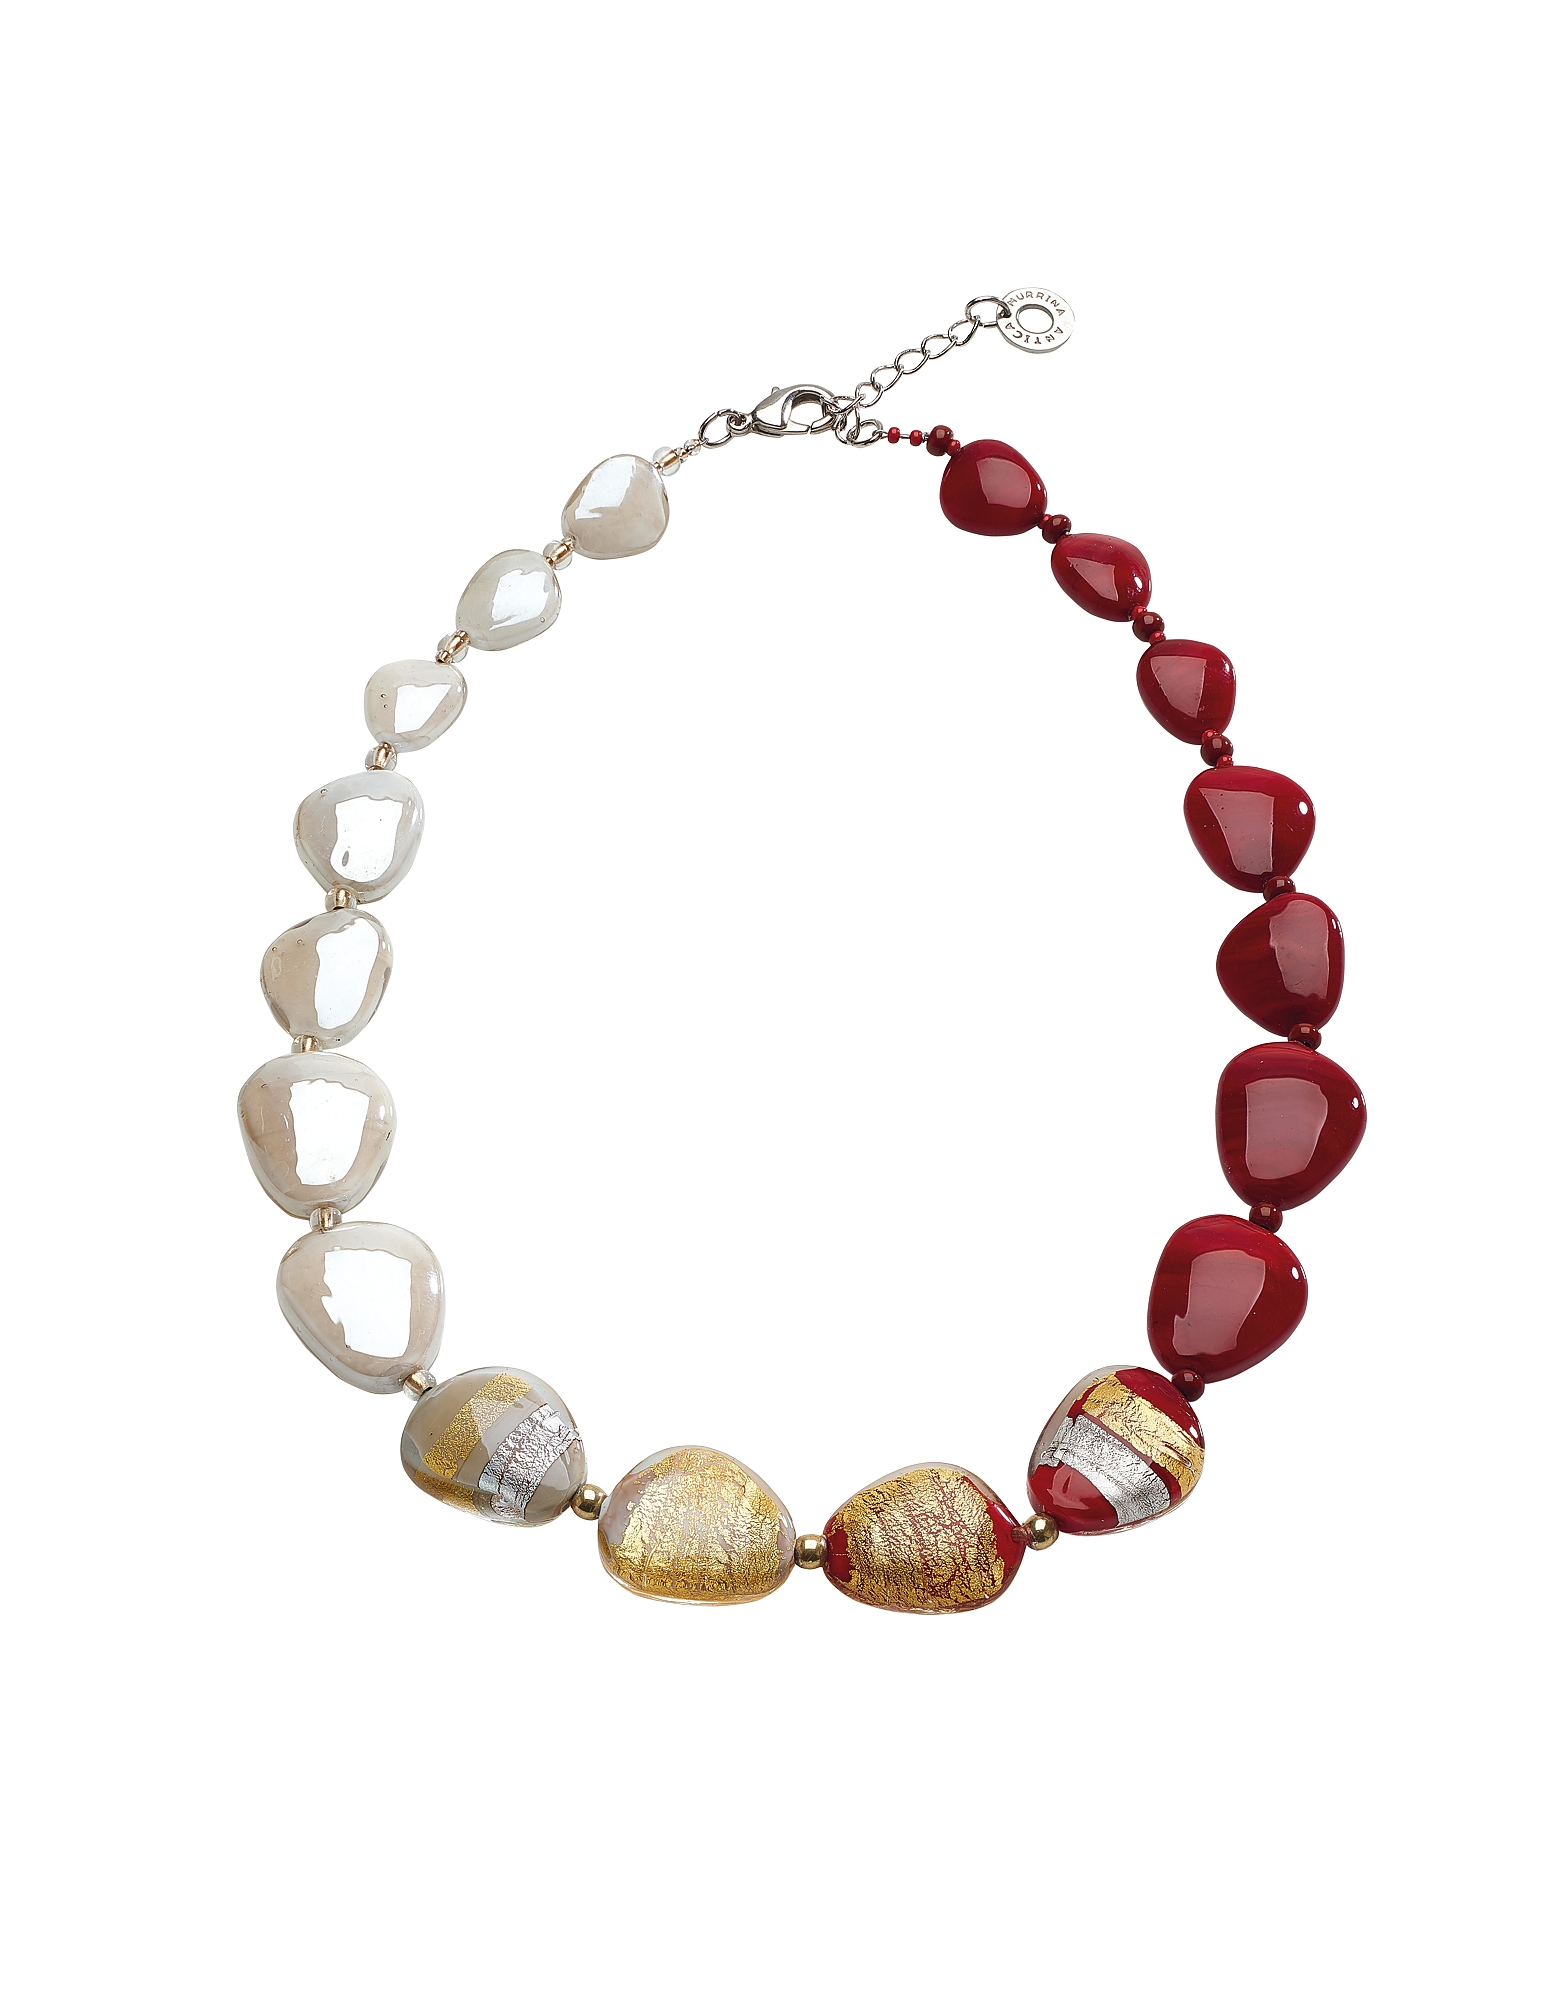 Antica Murrina Necklaces, Moretta Necklace